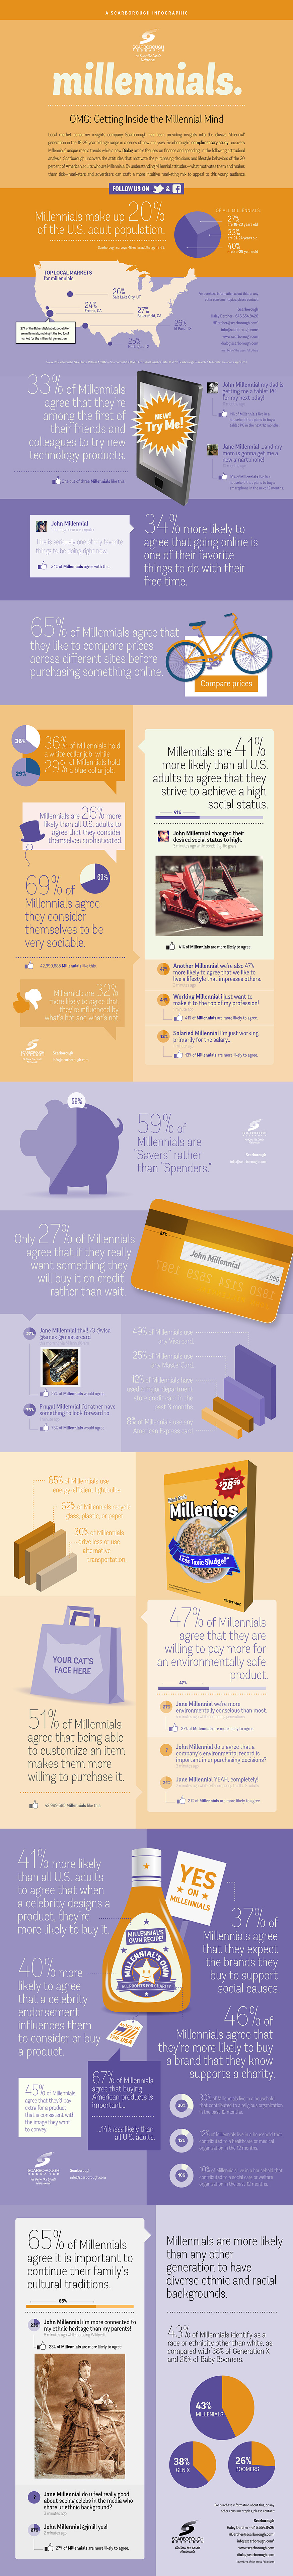 omg getting inside the millennial mind 50b7731106645 The Millennial Mind [INFOGRAPHIC]